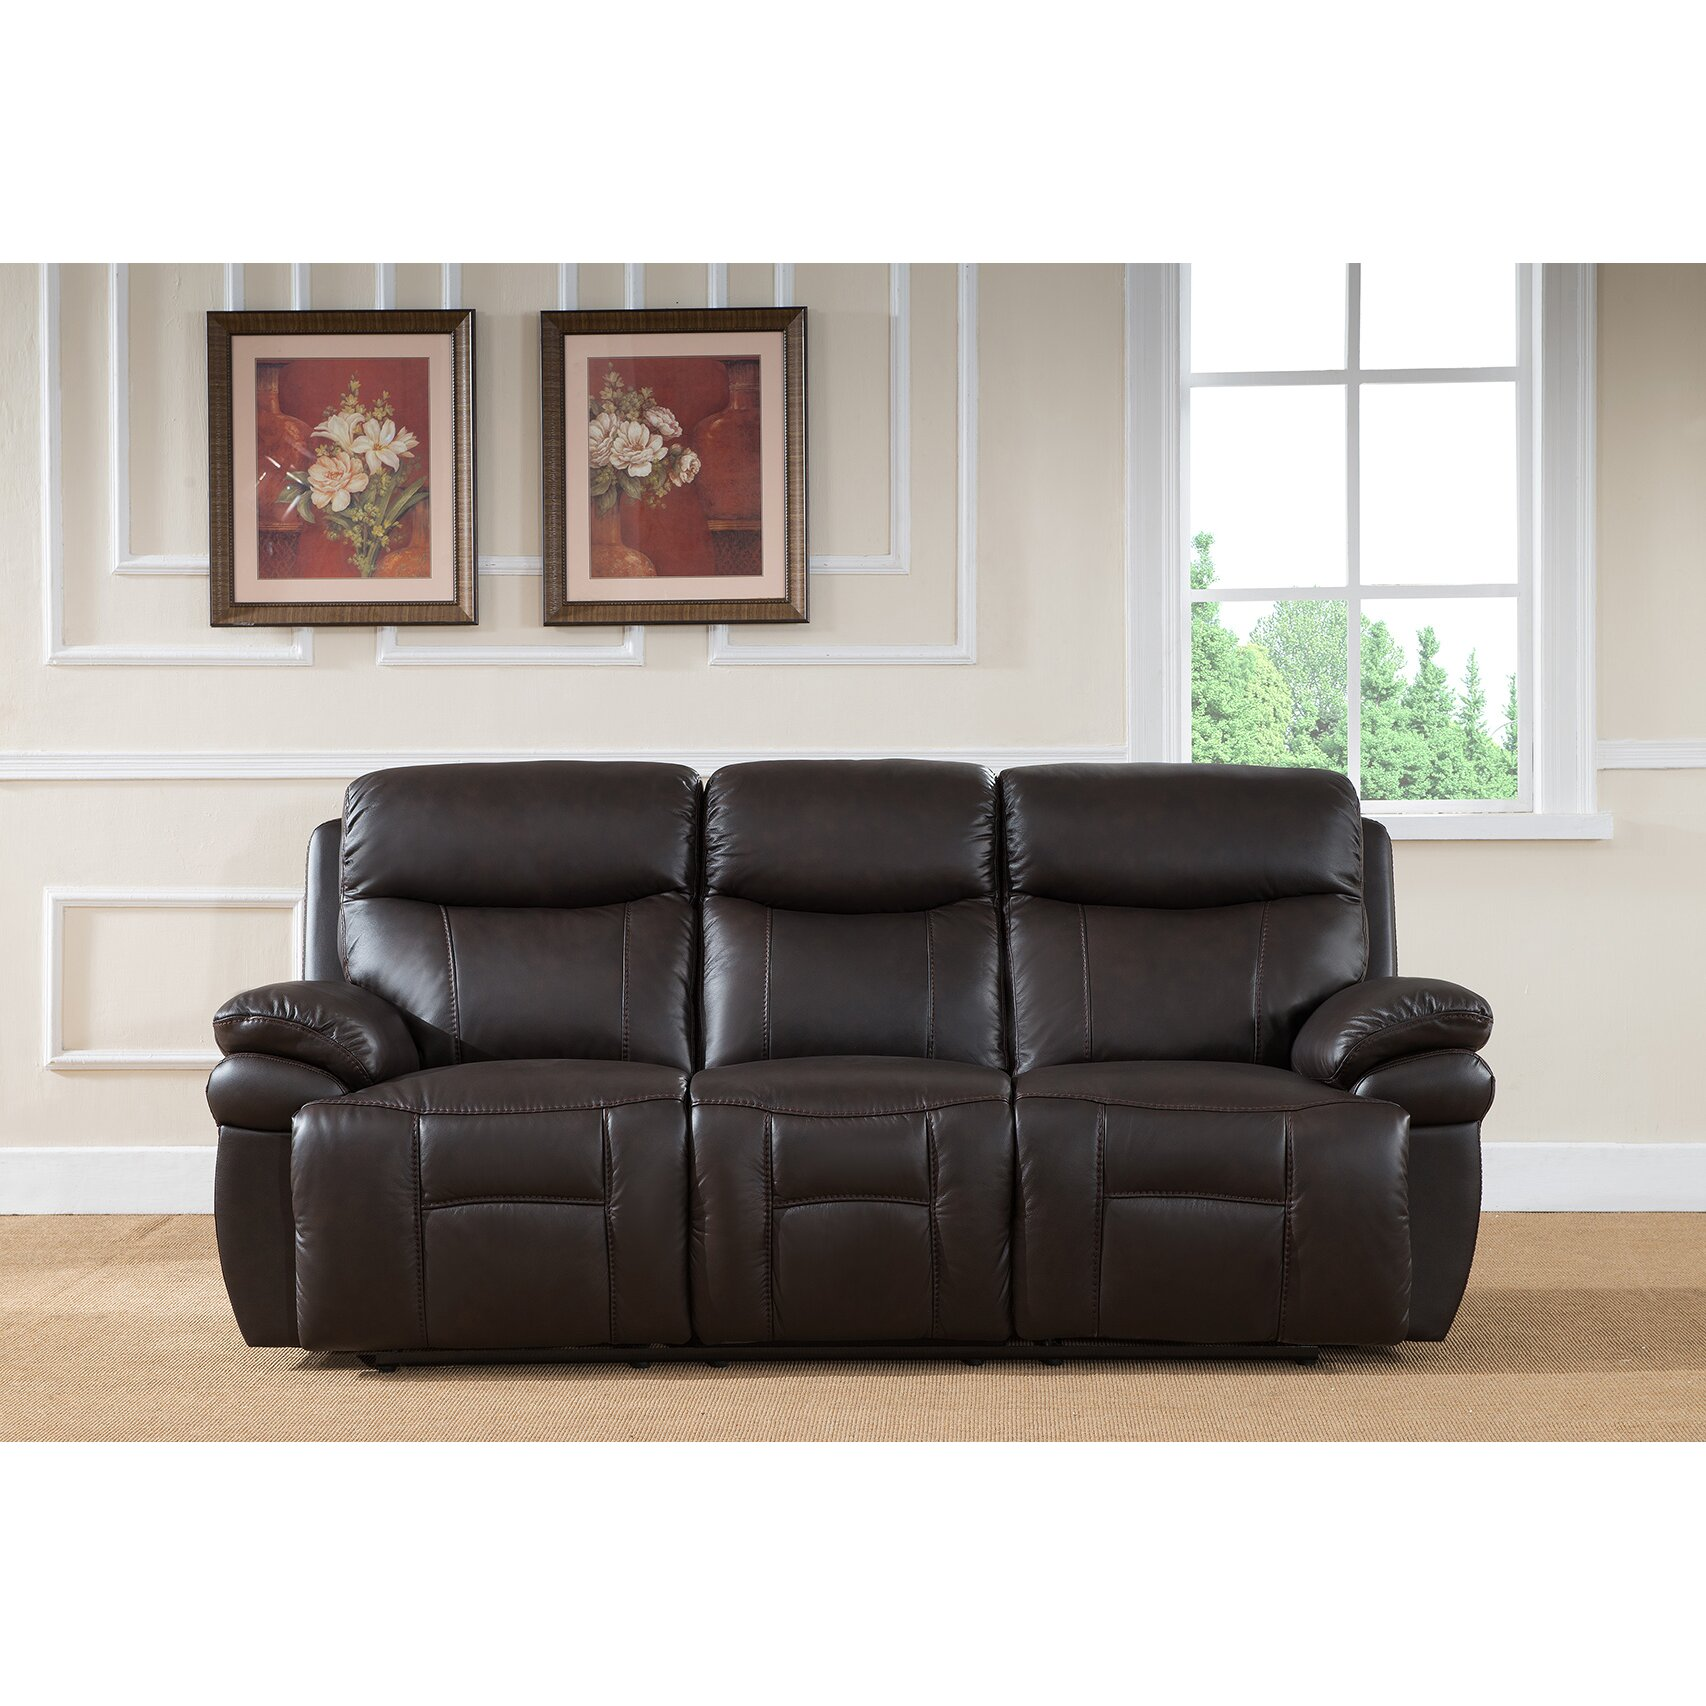 3 piece leather living room set amax rushmore 3 leather living room set amp reviews 24609